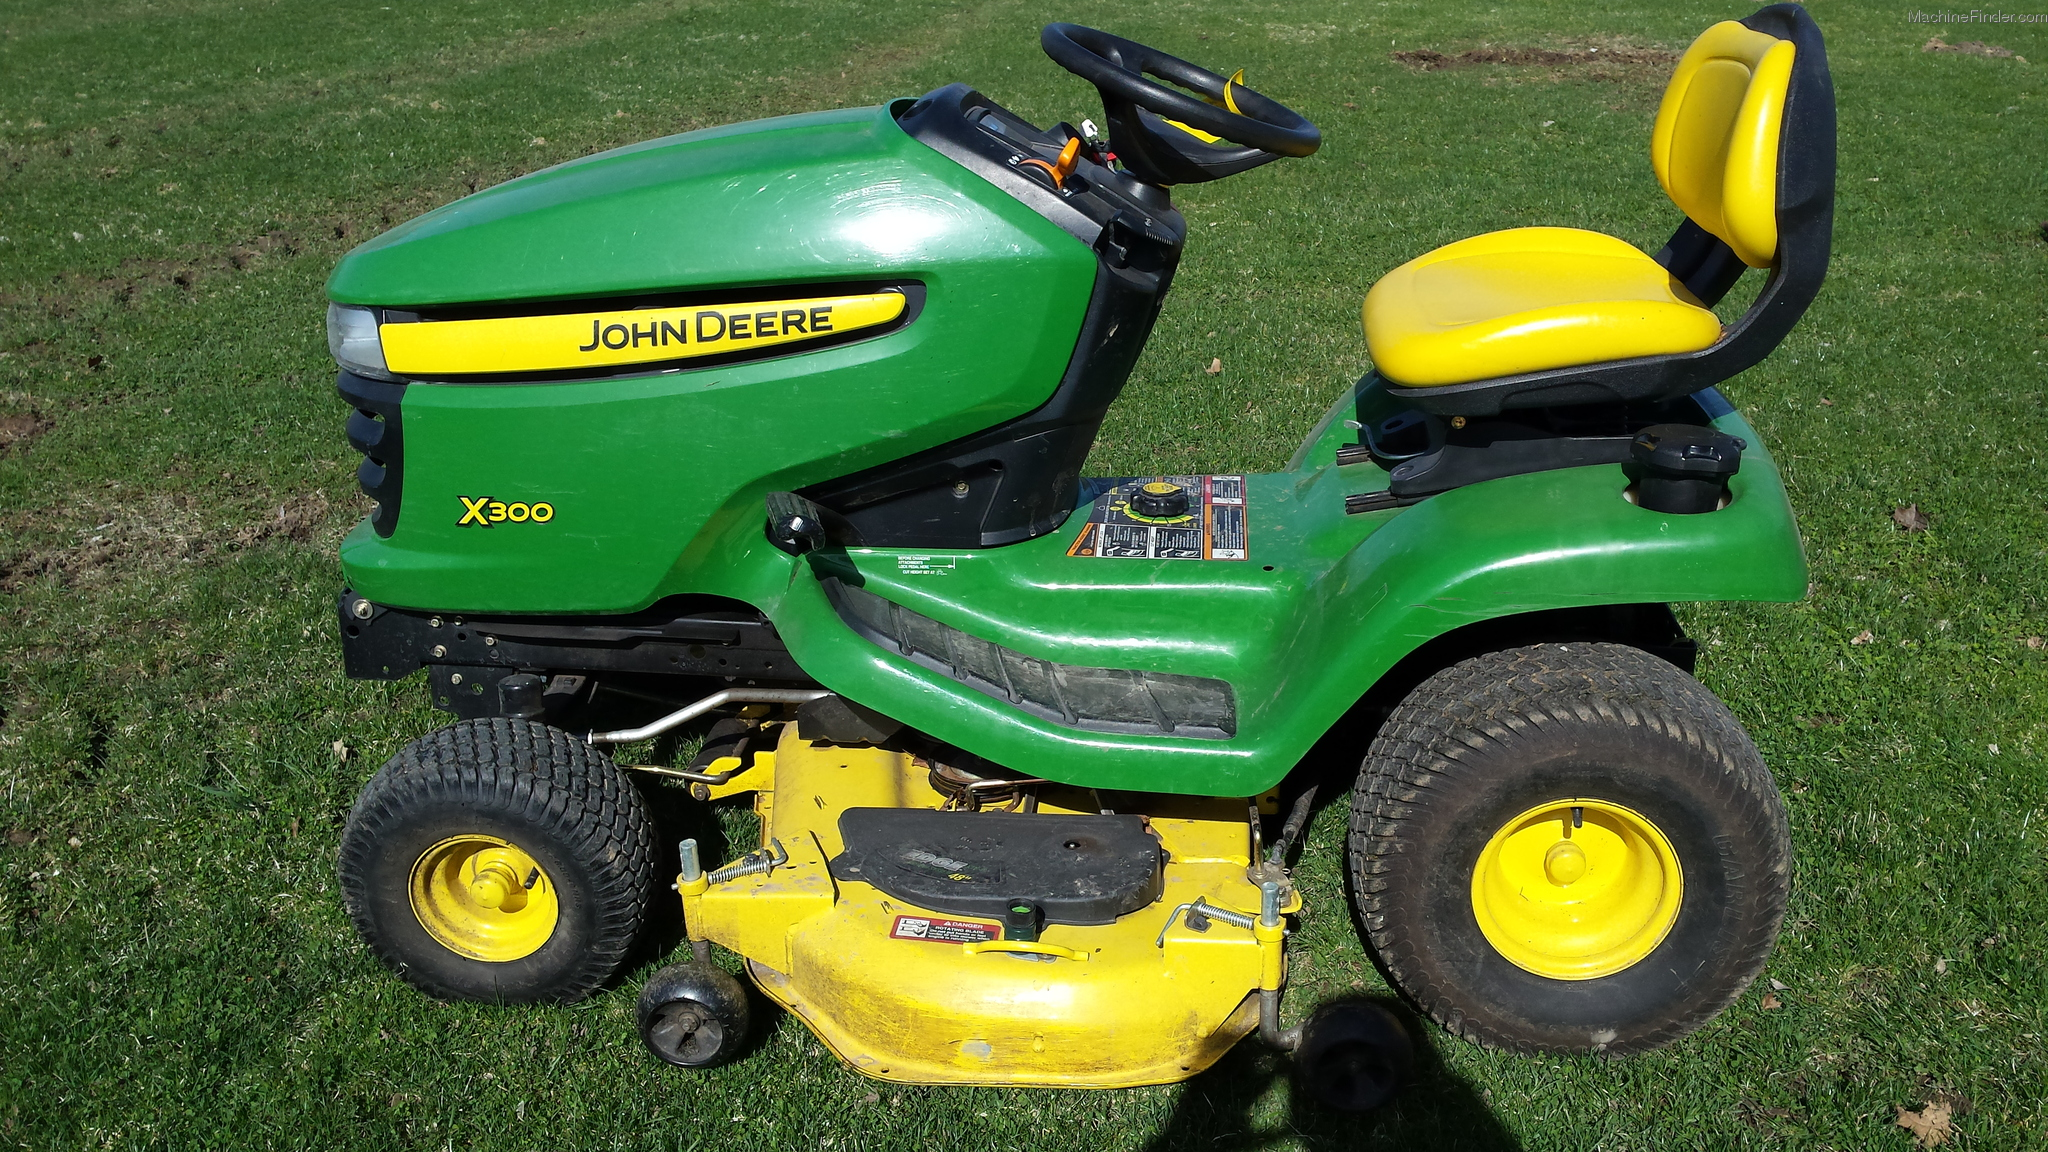 2011 john deere x300 lawn garden and commercial mowing. Black Bedroom Furniture Sets. Home Design Ideas